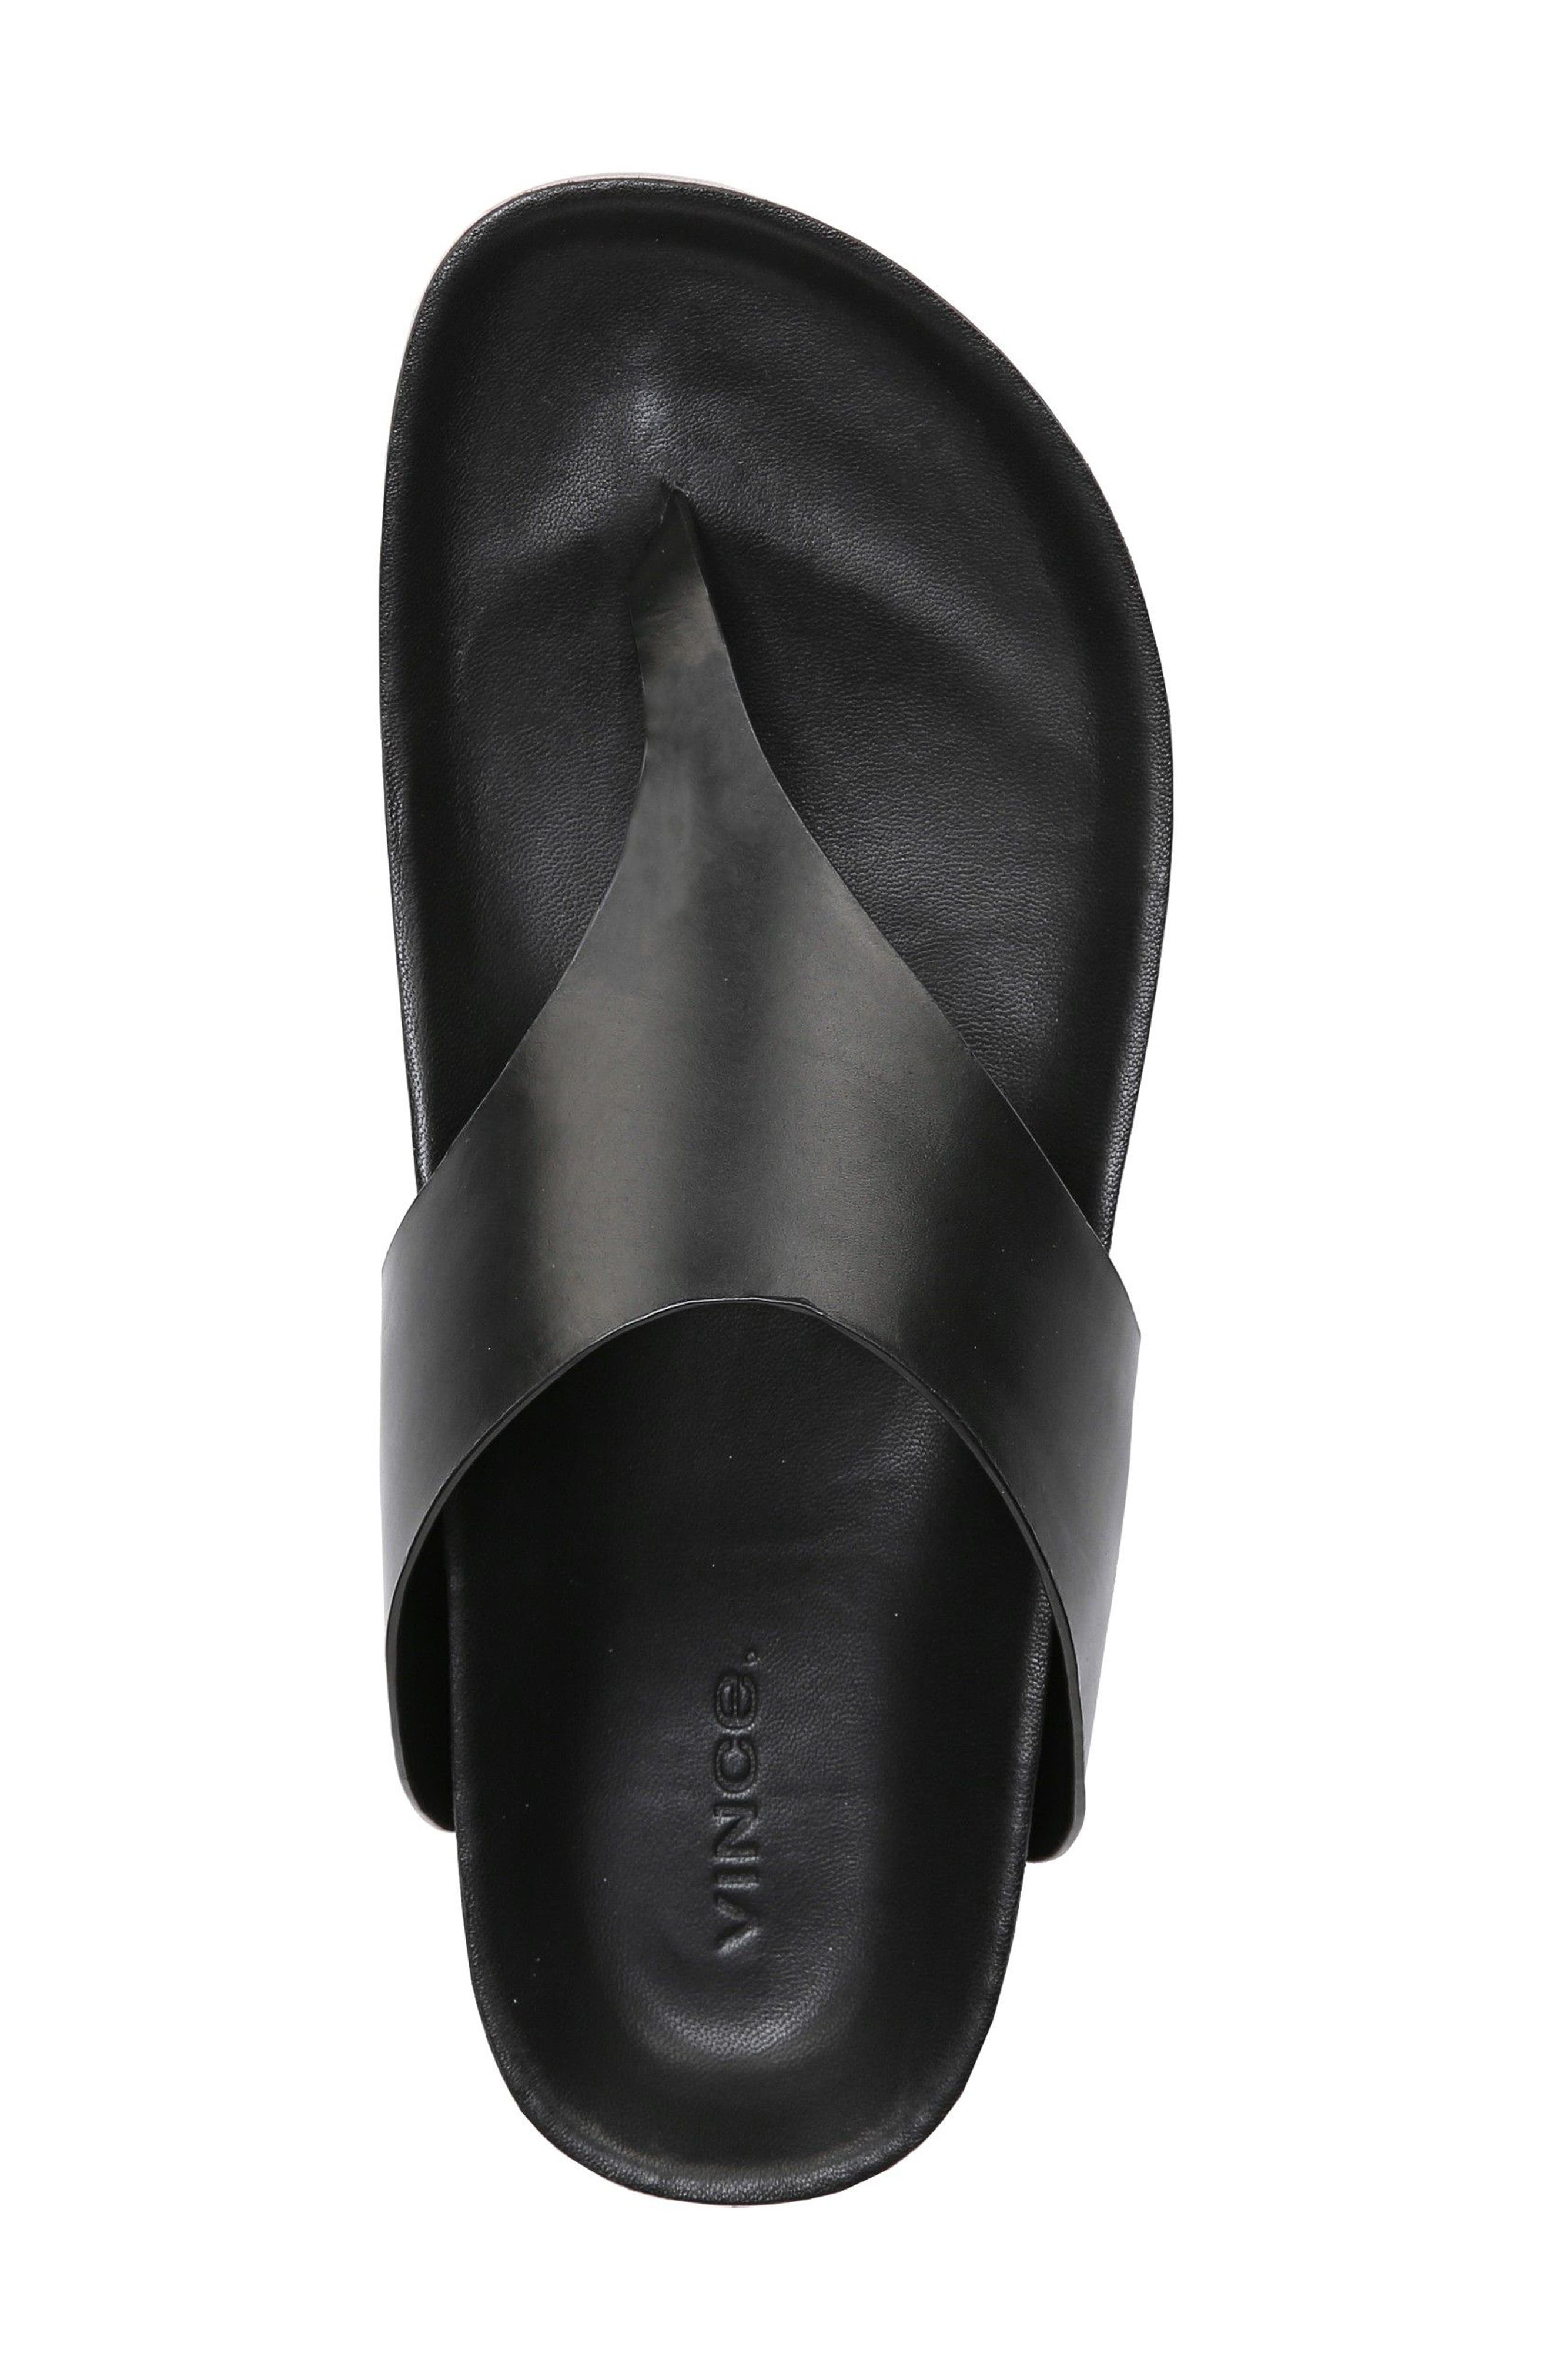 Padma Platform Sandal,                             Alternate thumbnail 4, color,                             BLACK